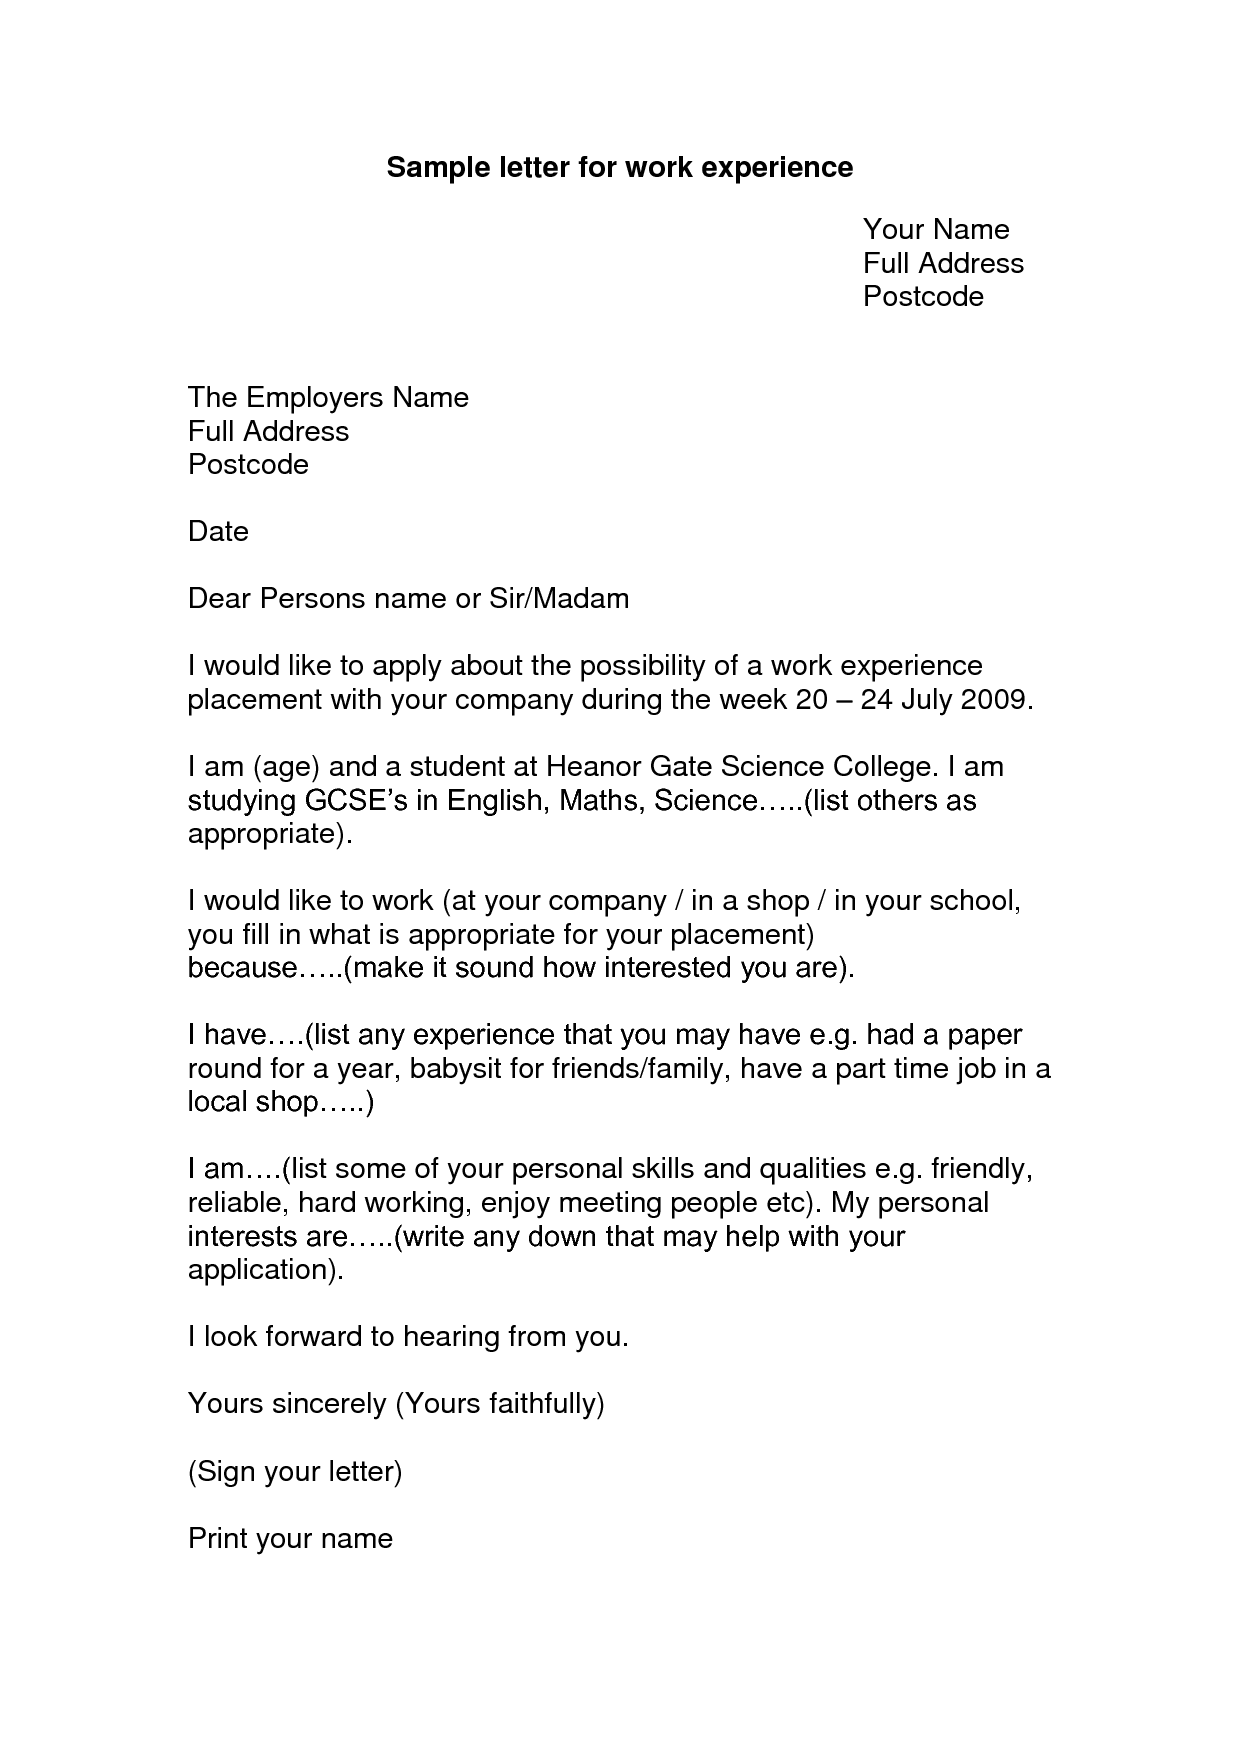 Sample Letter Of Resume To Work Work Experience Letter Example Google Search Looking